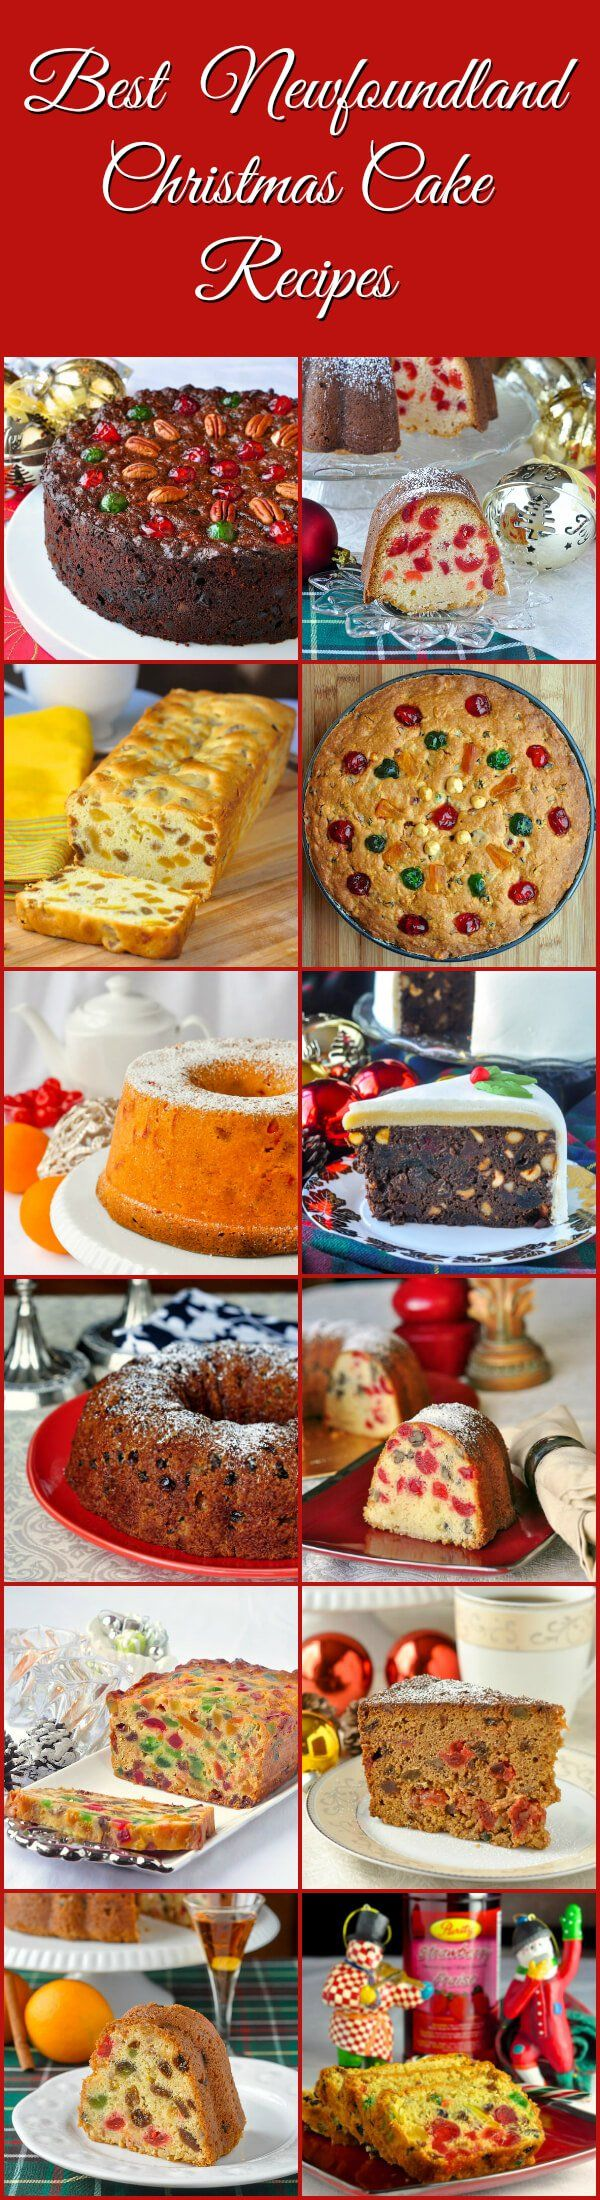 A collection of 12 different Christmas Fruitcake and Pound Cake recipes from traditional English style to new twists on decades old Newfoundland favourites during the holidays. You will not find better Holiday baking anywhere in Canada.